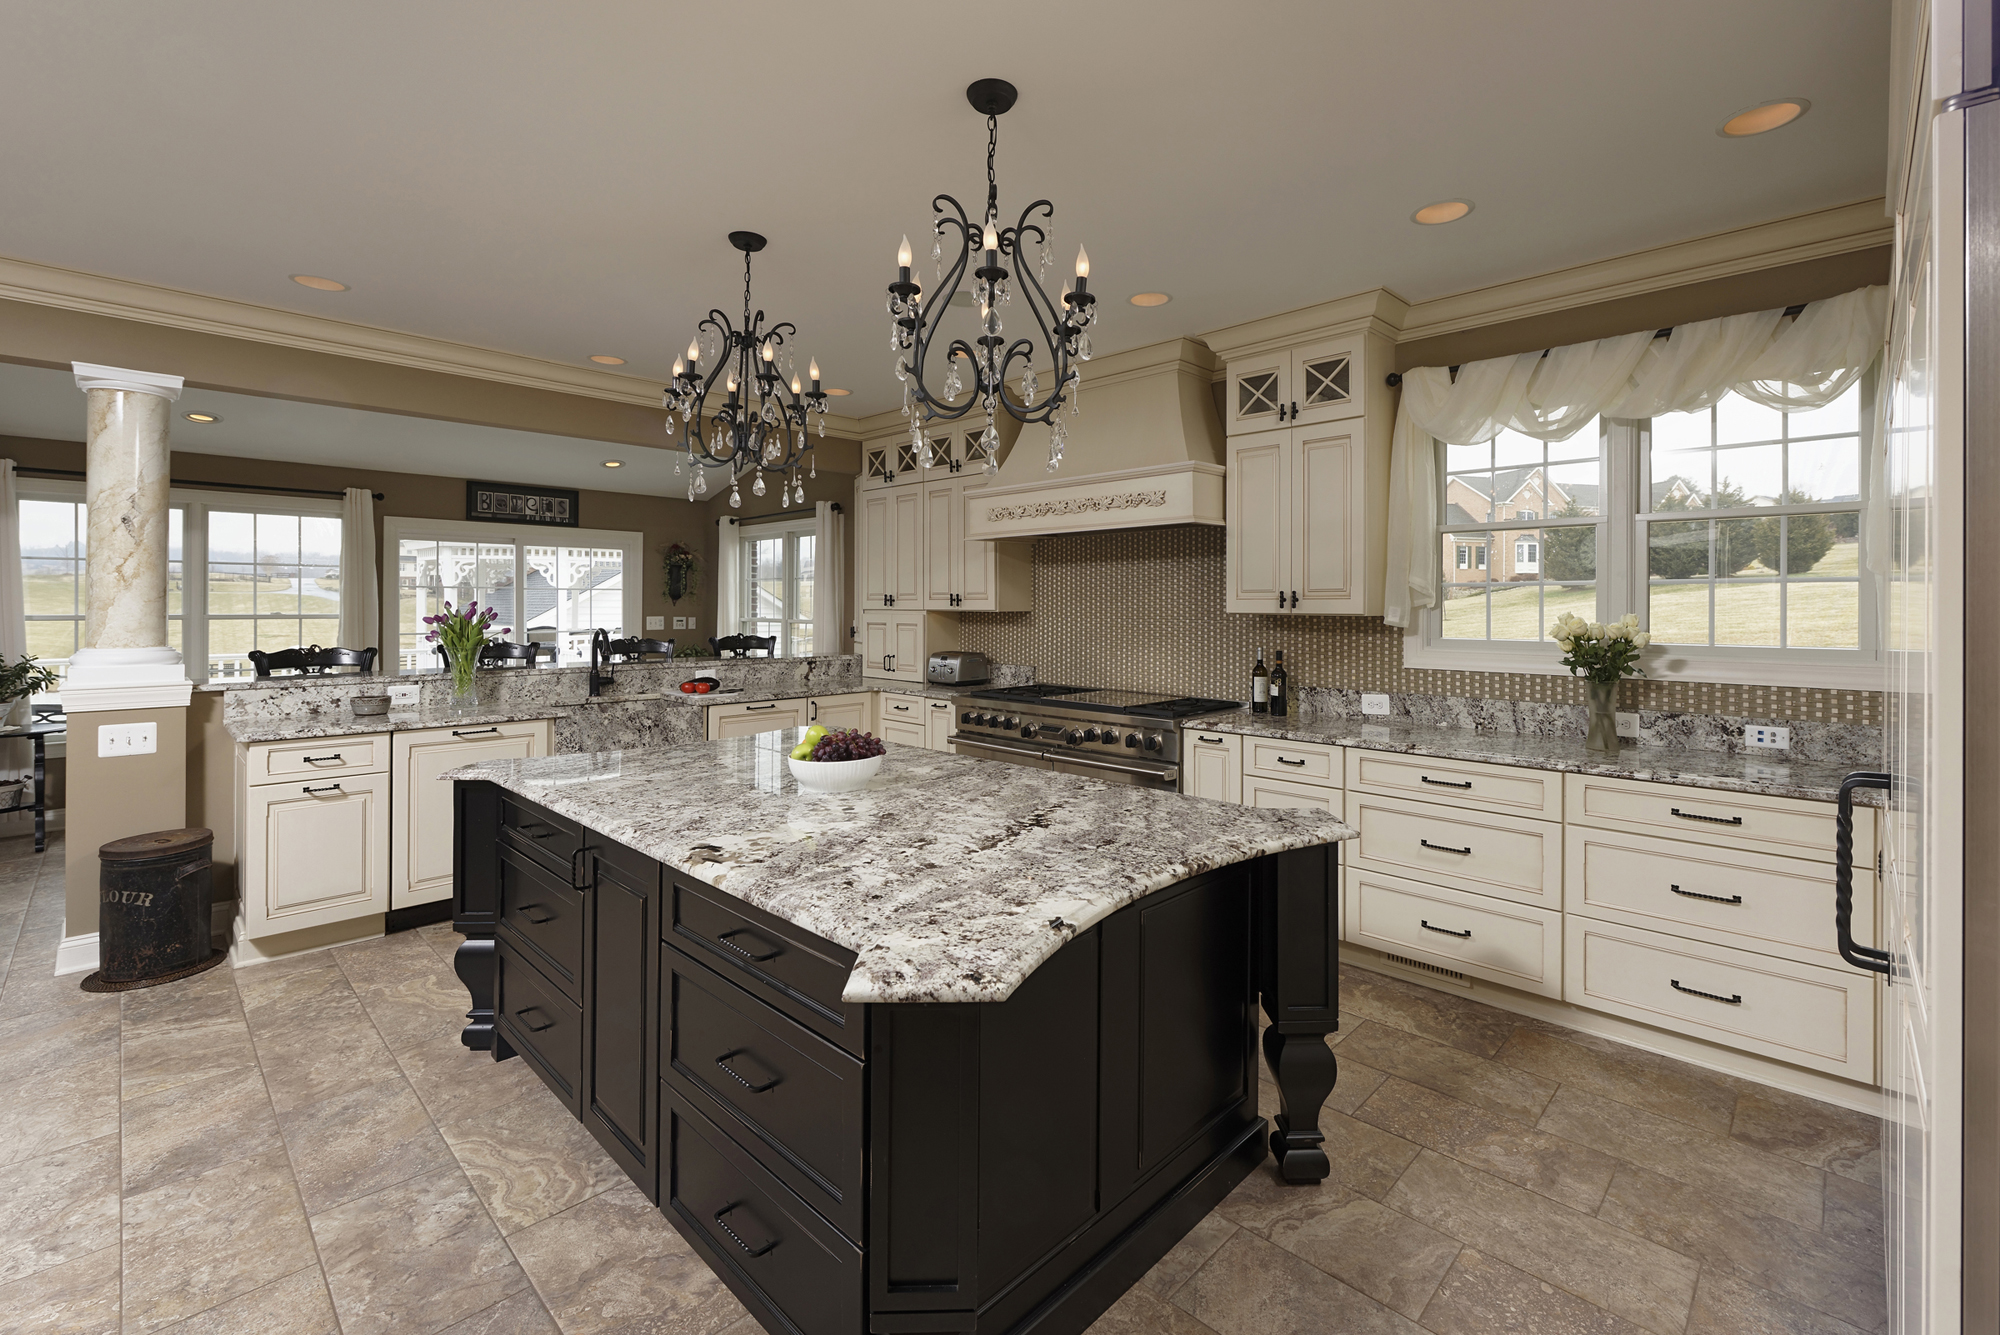 Spectacular Kitchen-Family Room Renovation In Leesburg